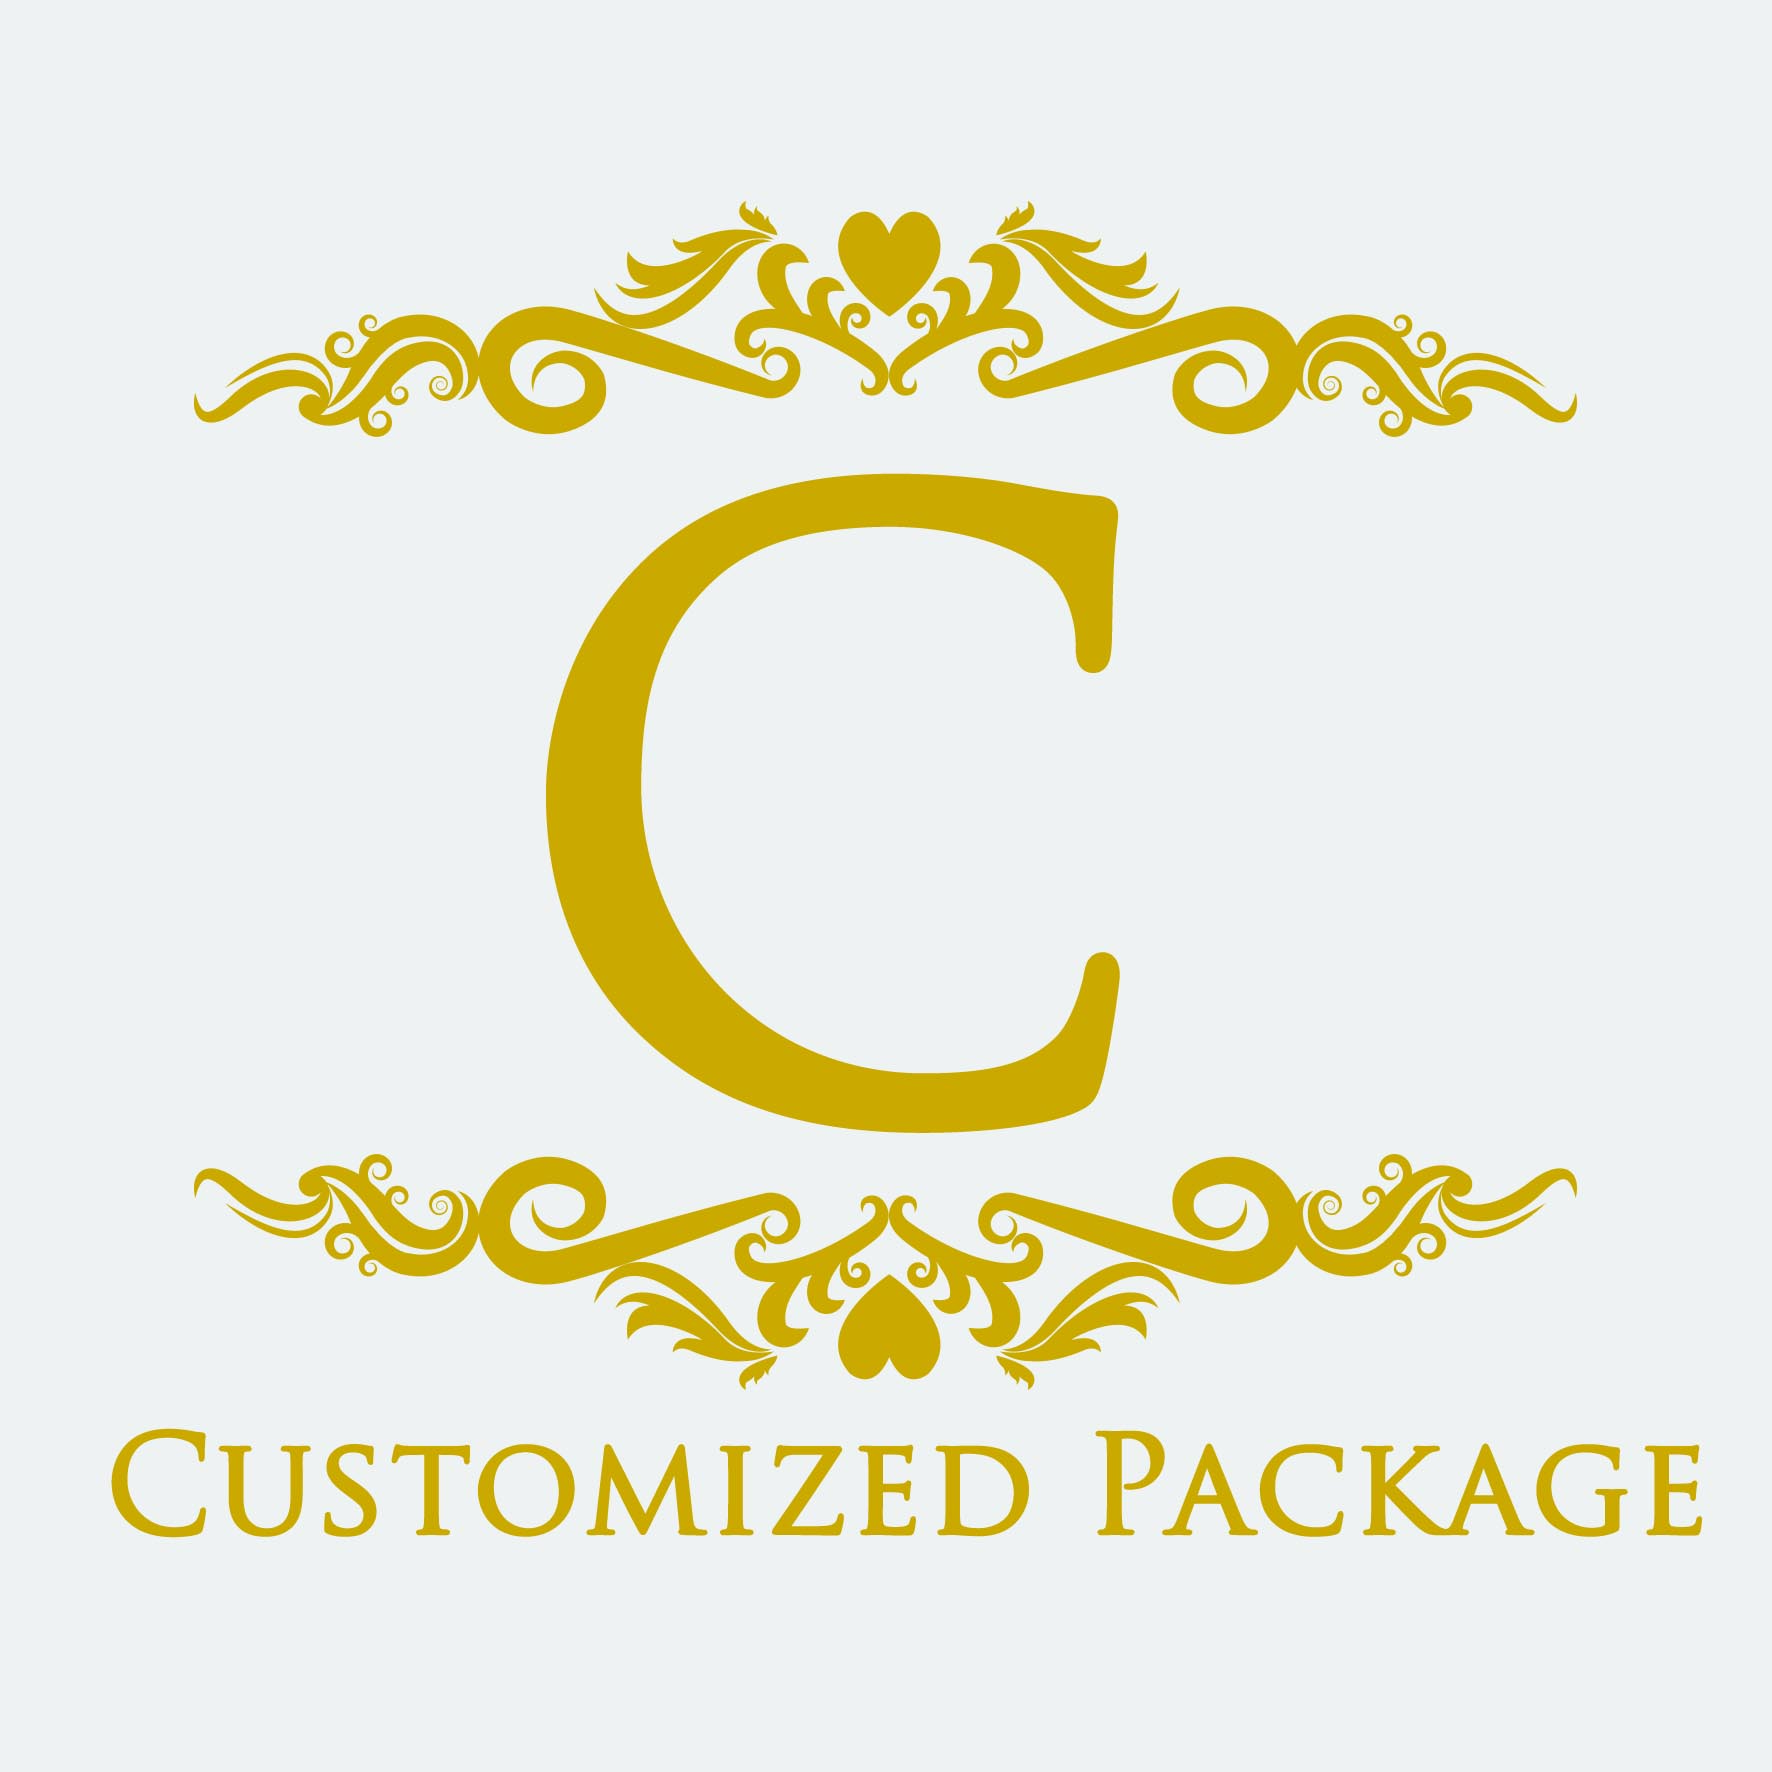 Life Story Customized Package